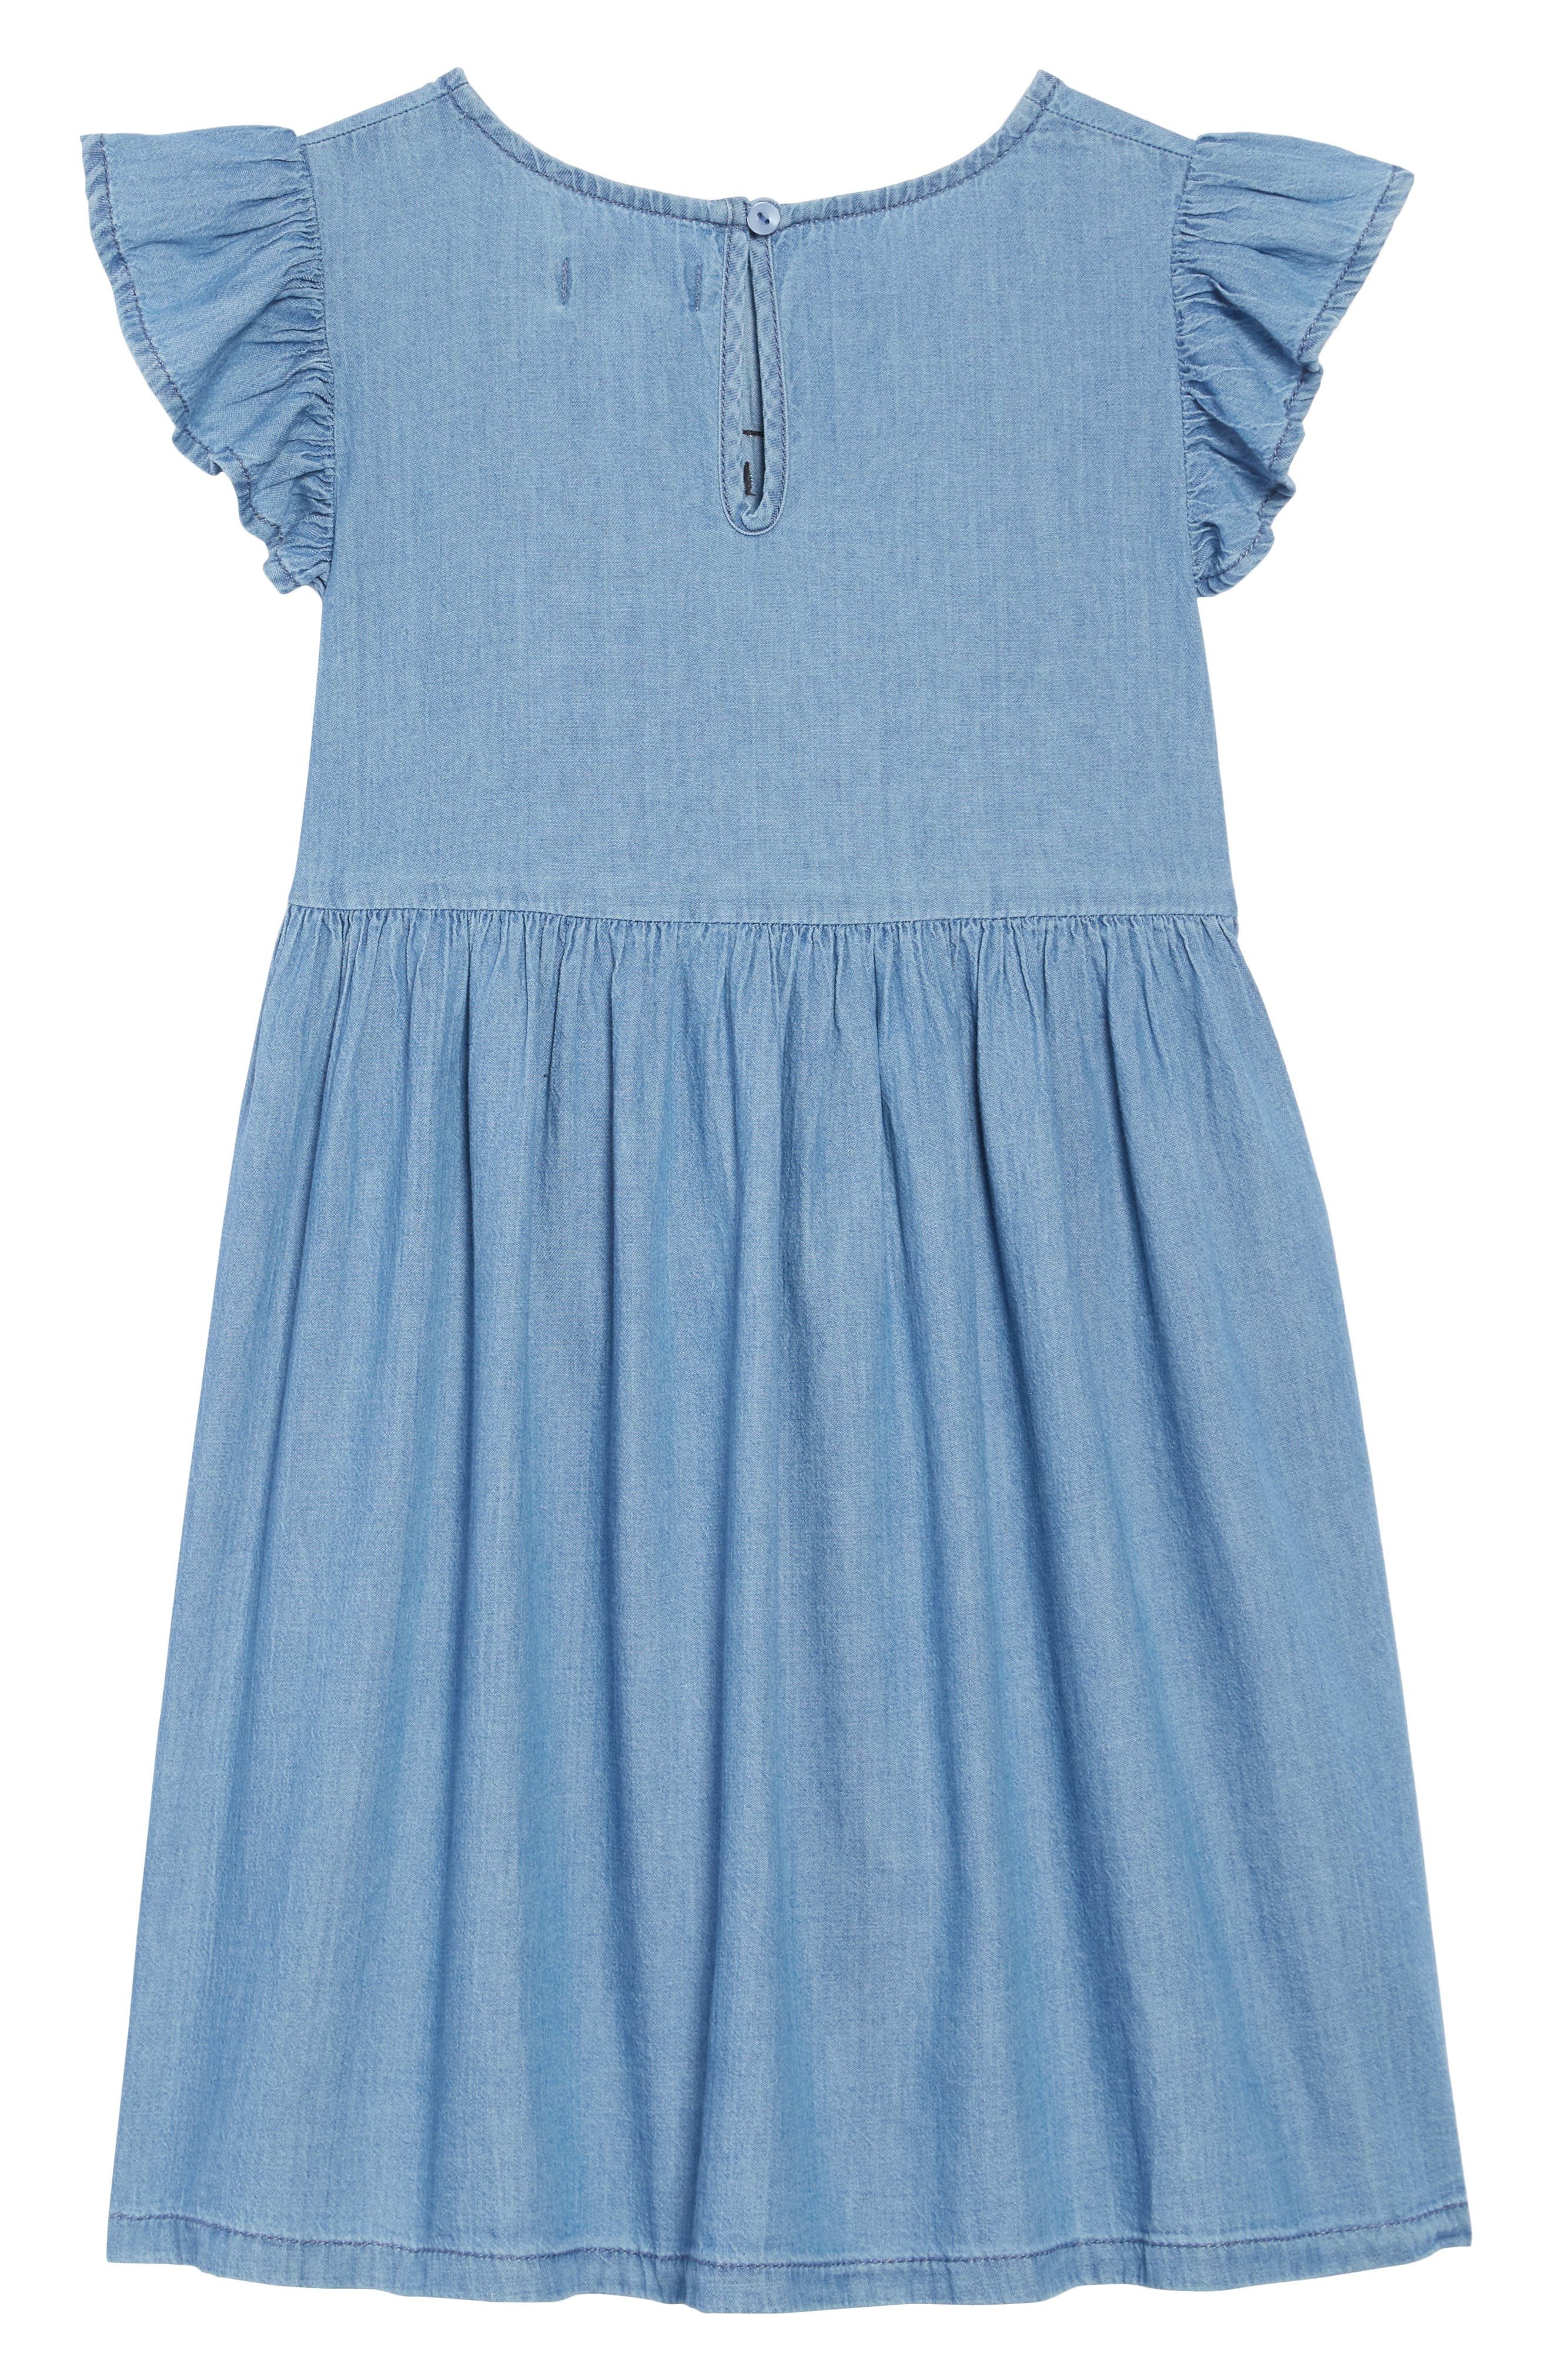 Embroidered Chambray Dress,                             Alternate thumbnail 2, color,                             WEST COAST WASH